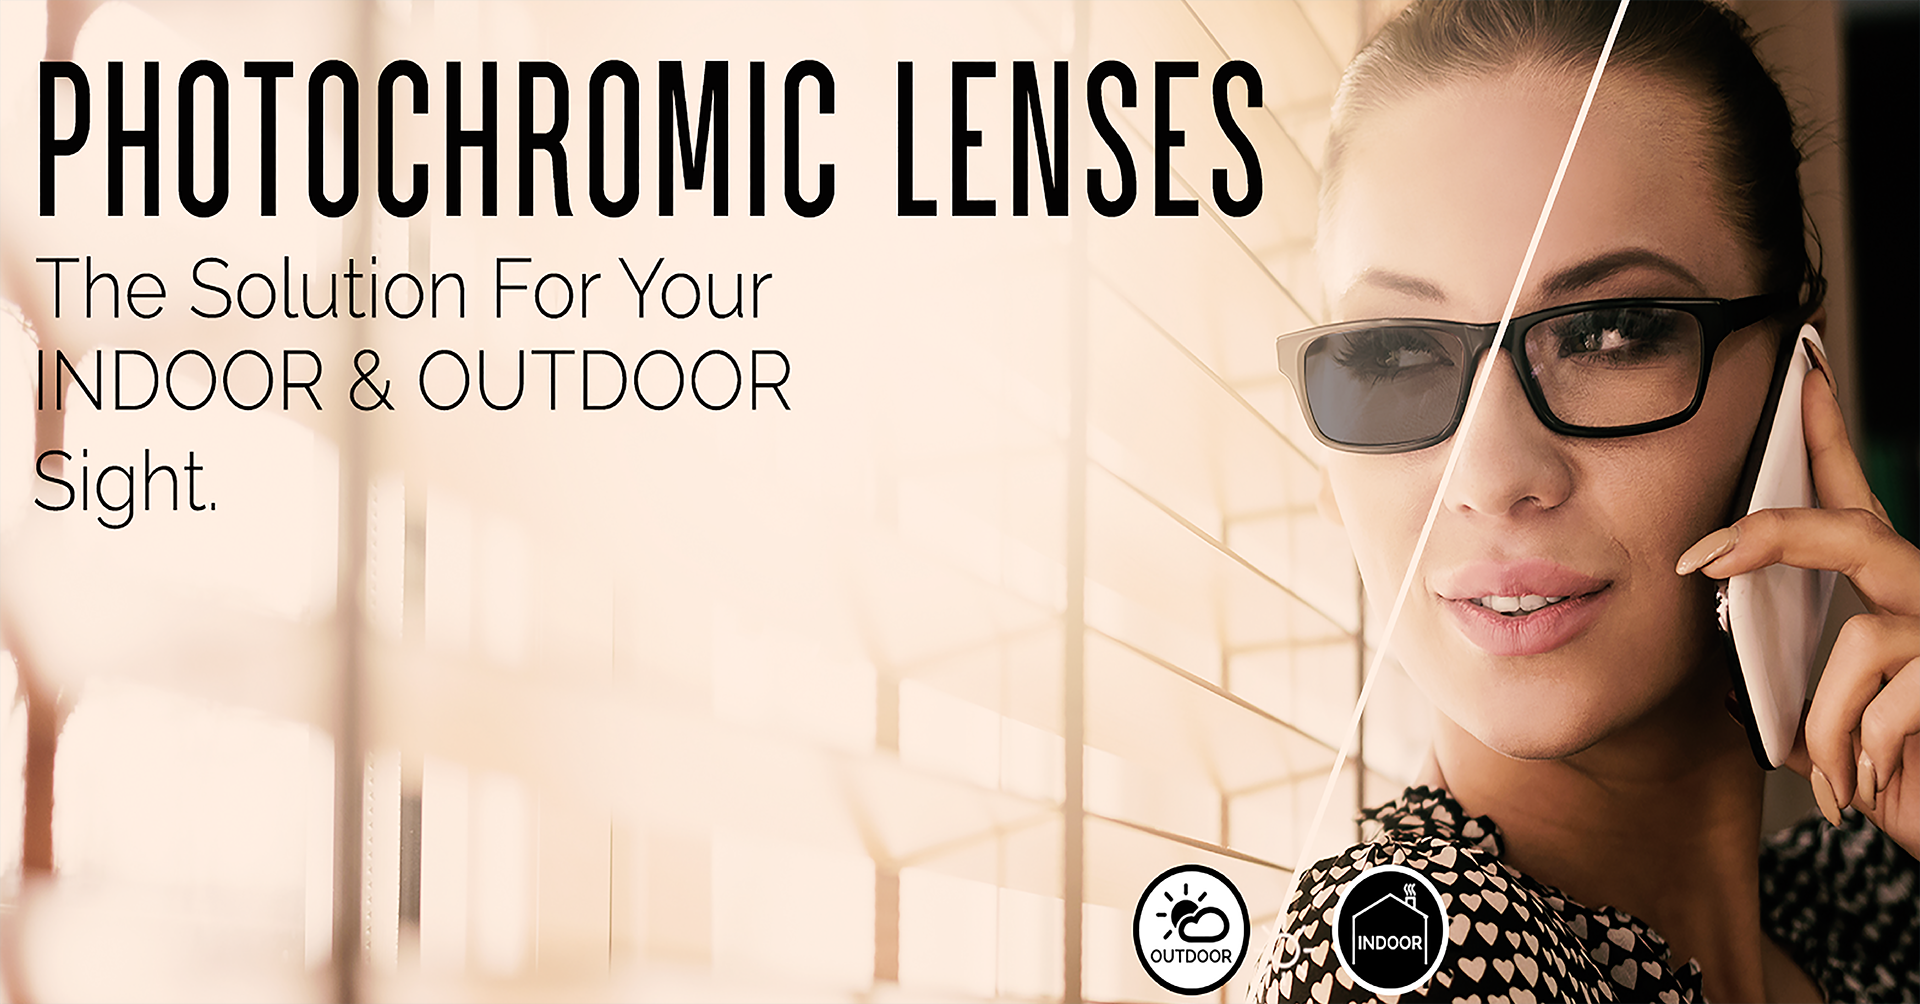 2)PHOTOCHROMIC LENSES: THE SOLUTION FOR YOUR INDOOR AND OUTDOOR VISION